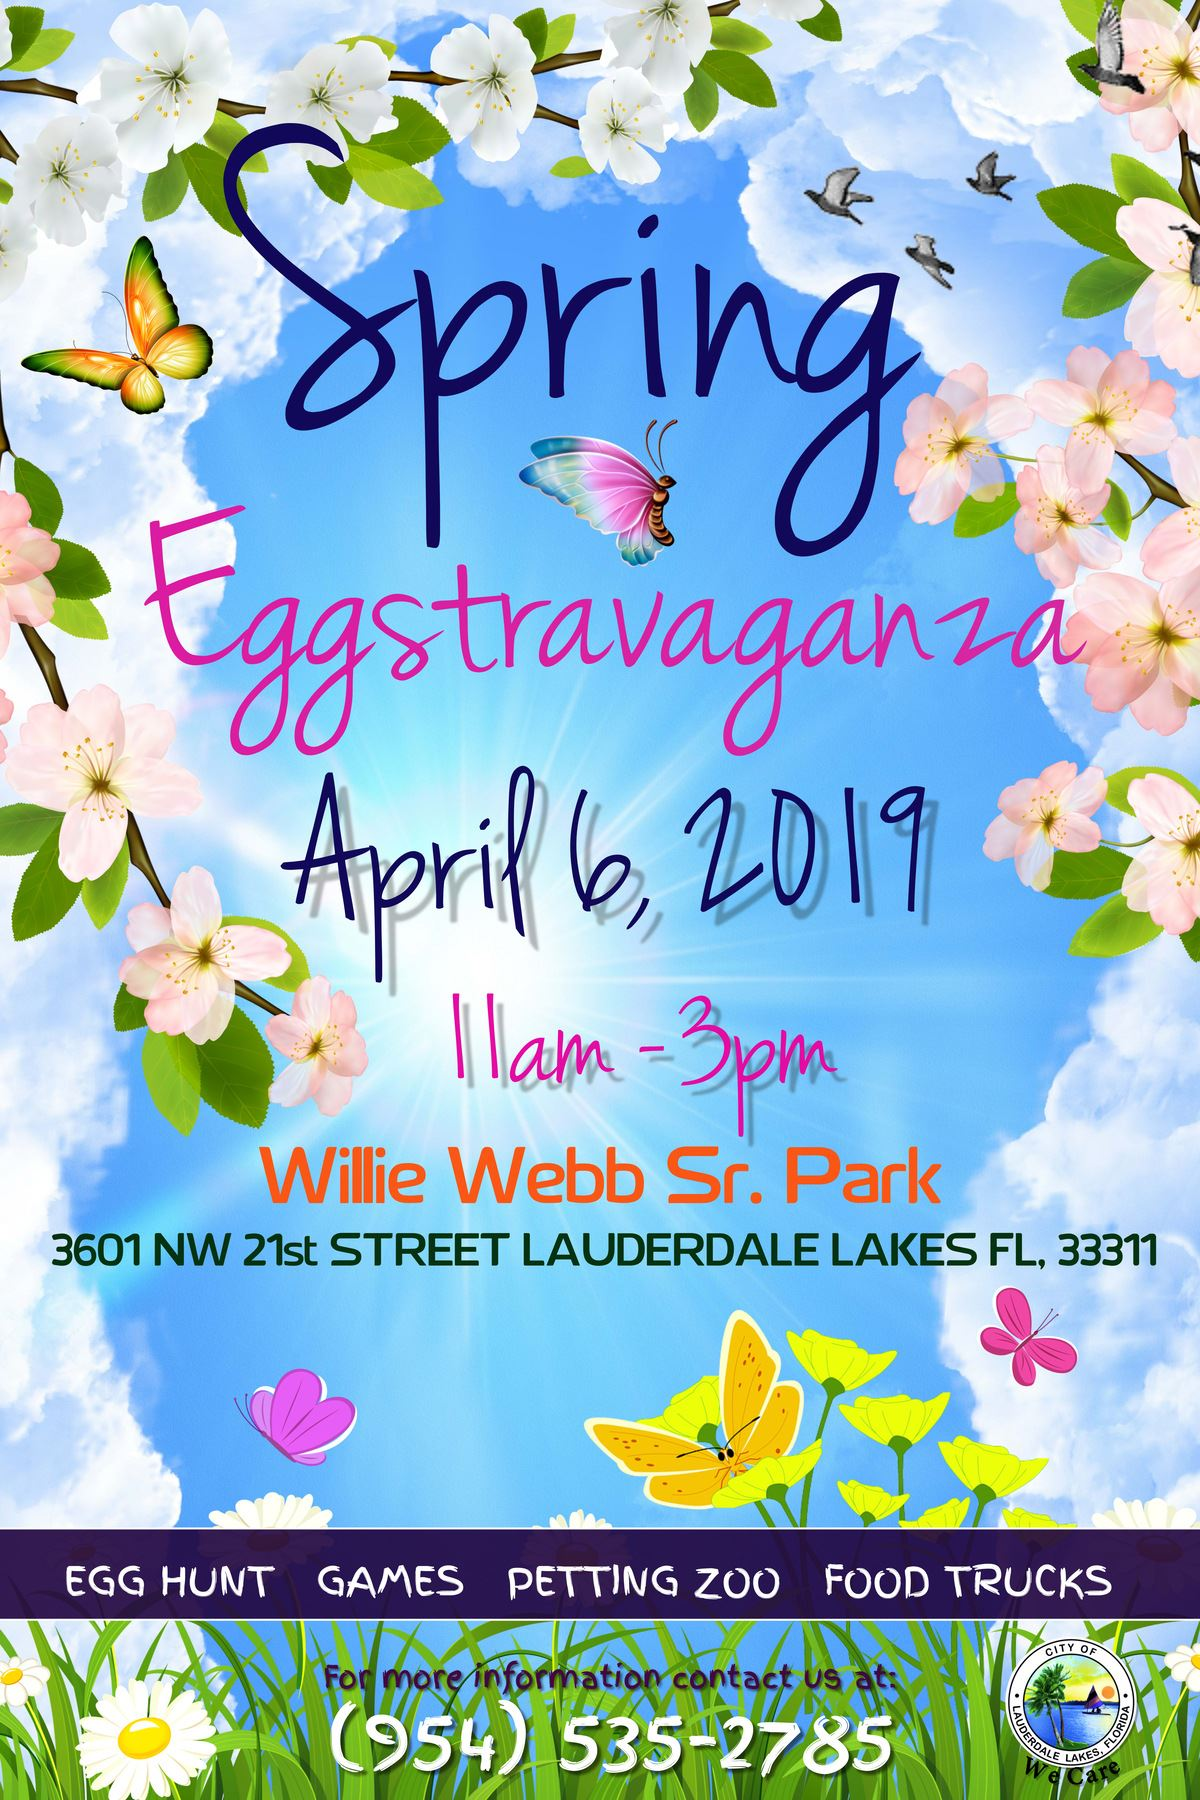 Spring Eggstaravaganza Flyer revised